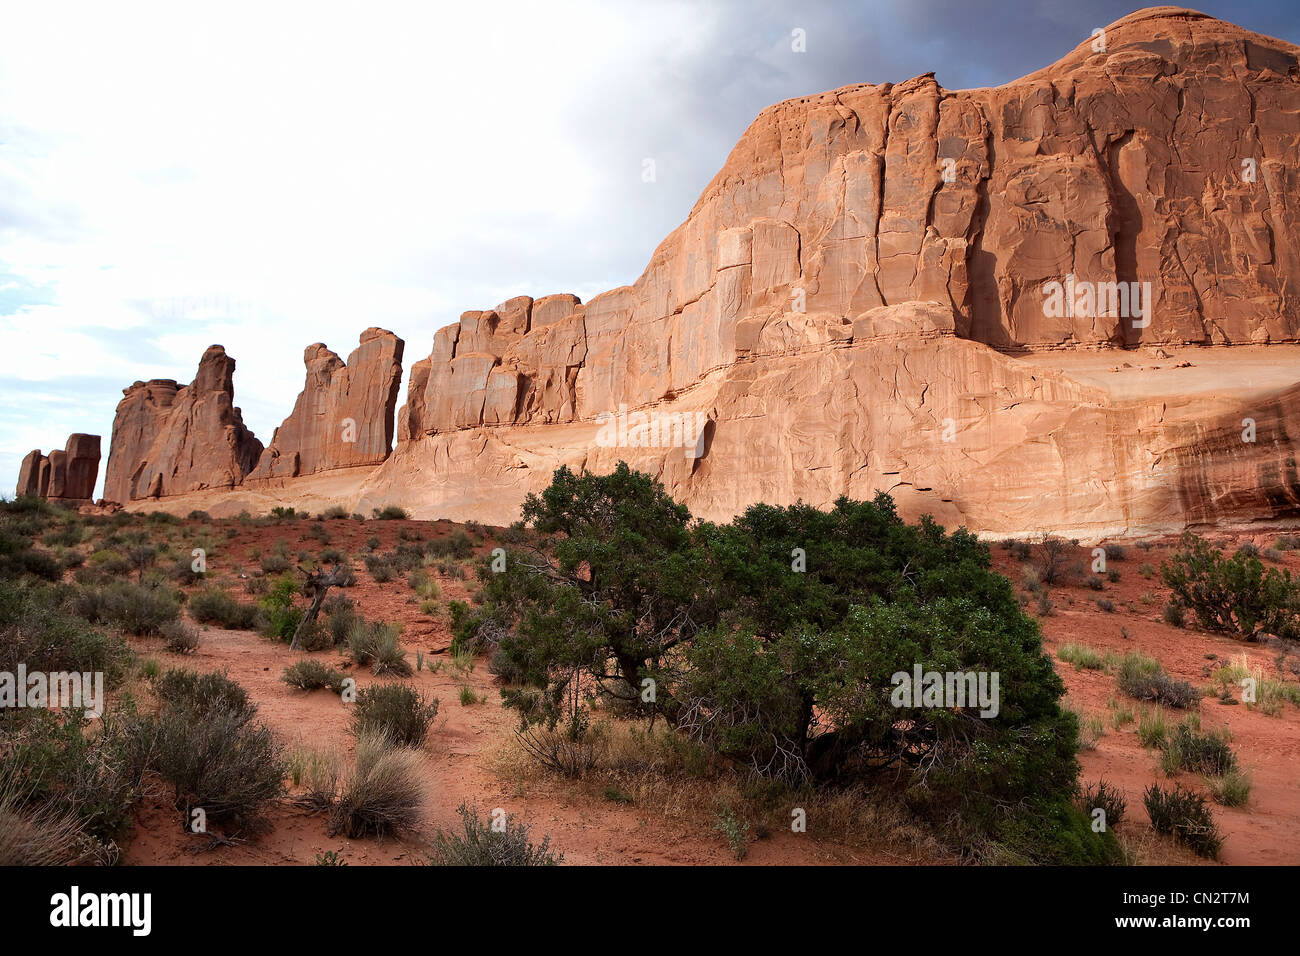 Red rocks of Moab, Utah, USA - Stock Image